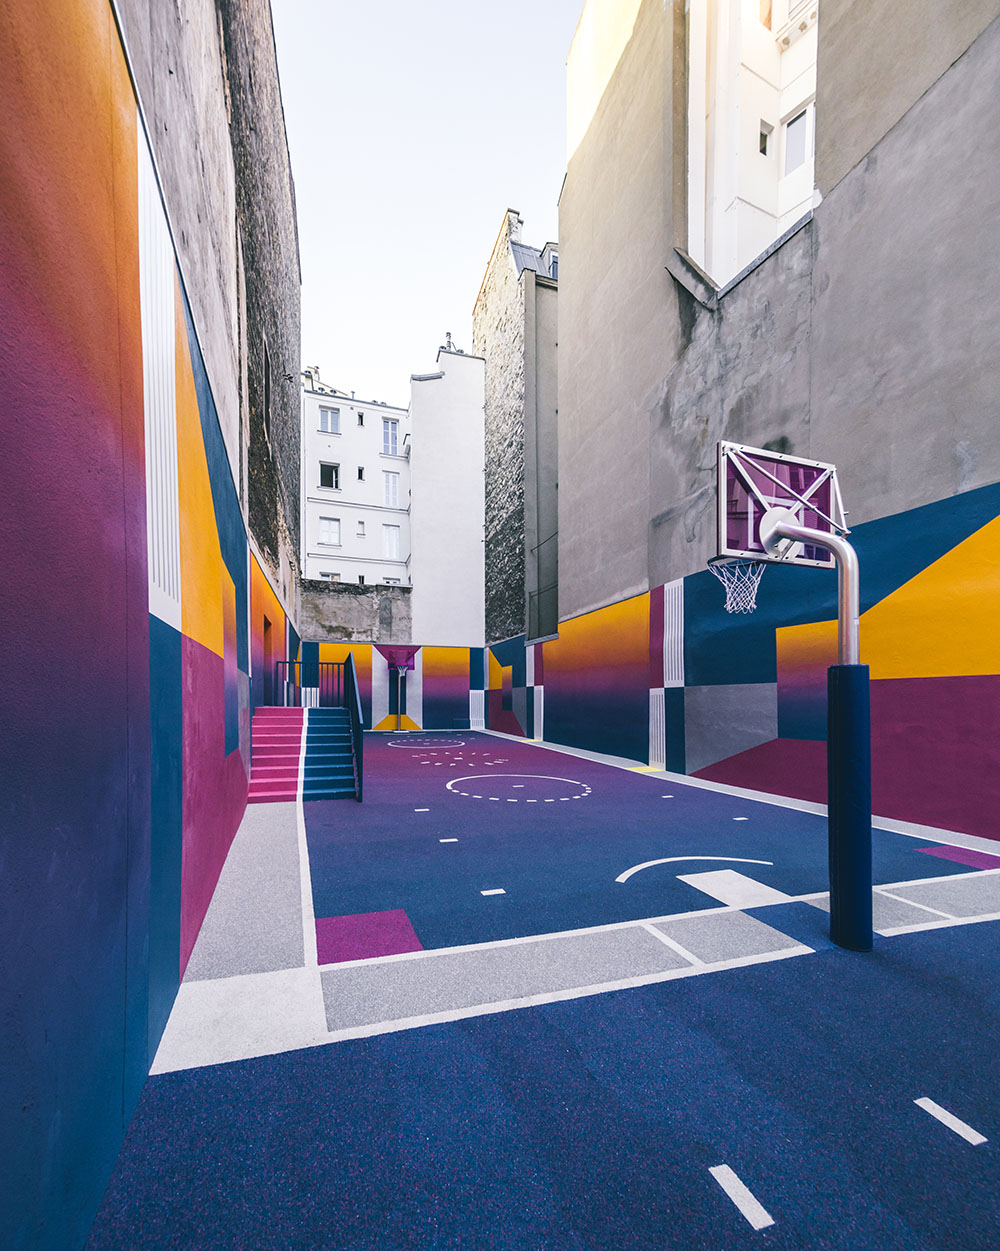 Parisian Basketball Court Amazingly Decorated With The 80s Colorful Aesthetic By Ill Studio Pigalle And Nike 9